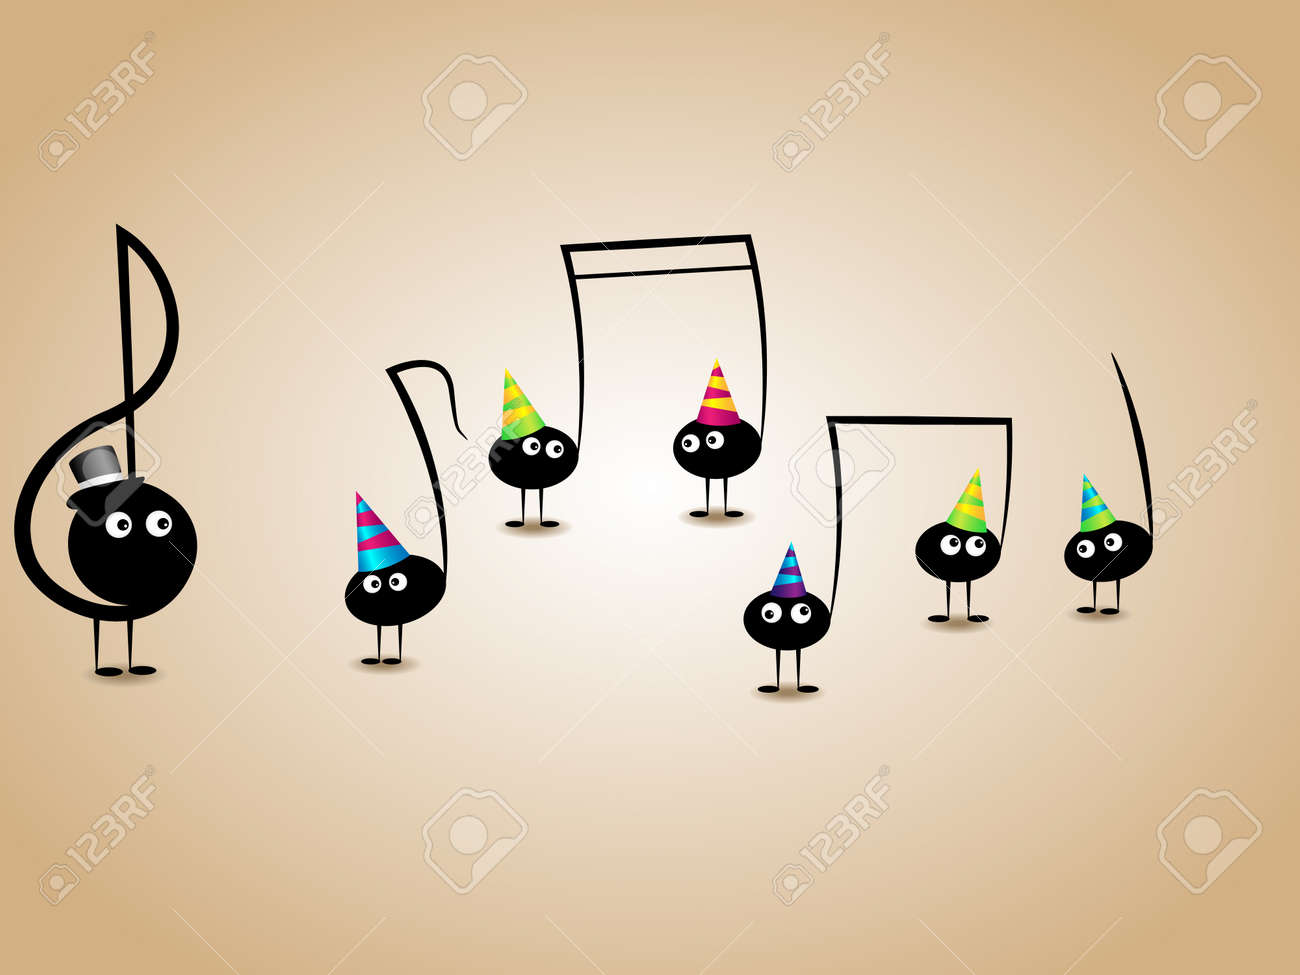 Free Musical Greeting Cards free online baby shower invites – Birthday Cards Musical